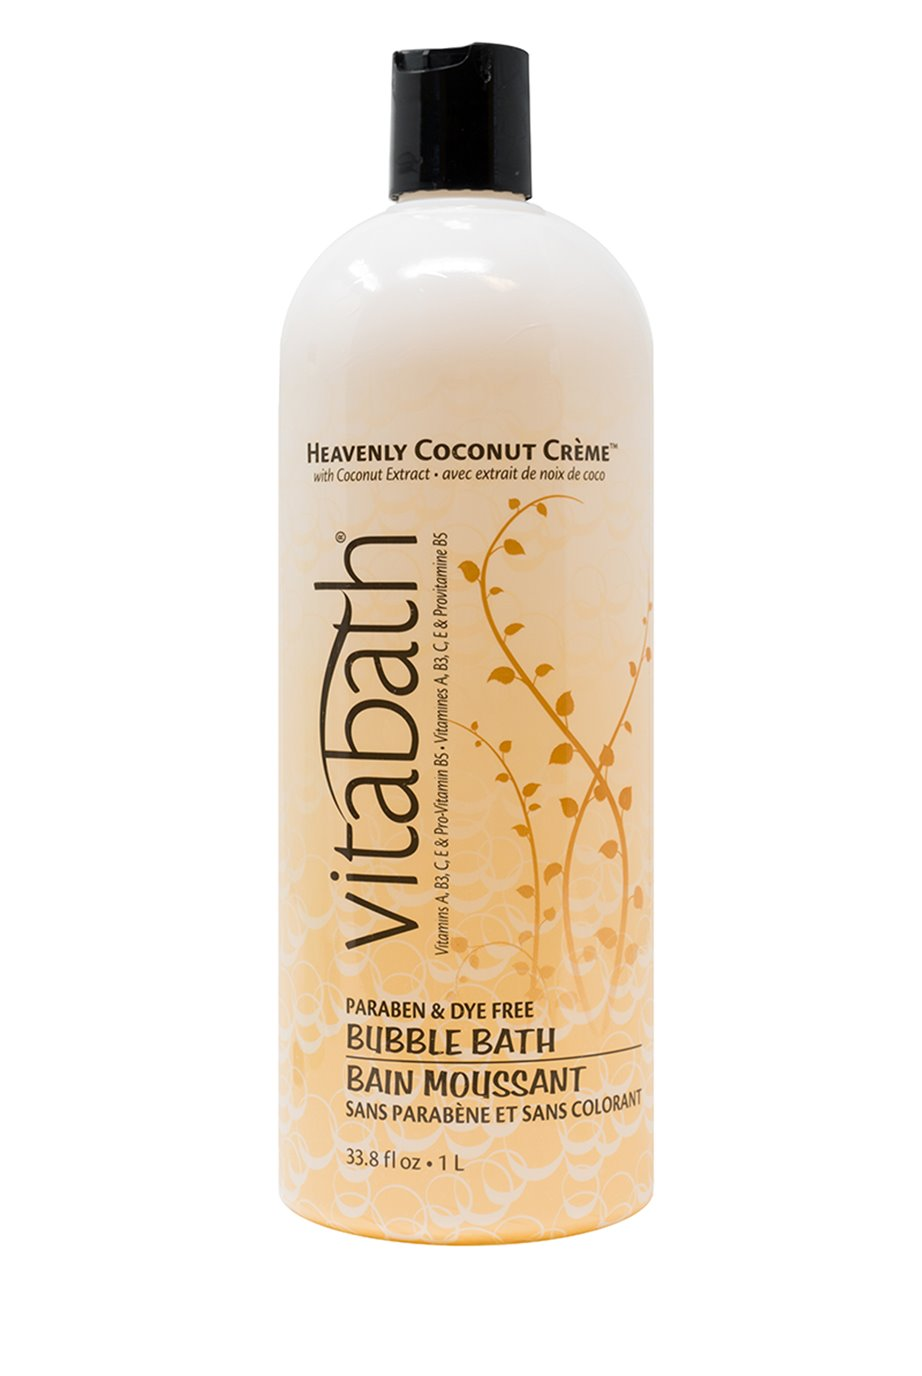 Vitabath Heavenly Coconut Creme Bubble Bath (33.8 fl oz)